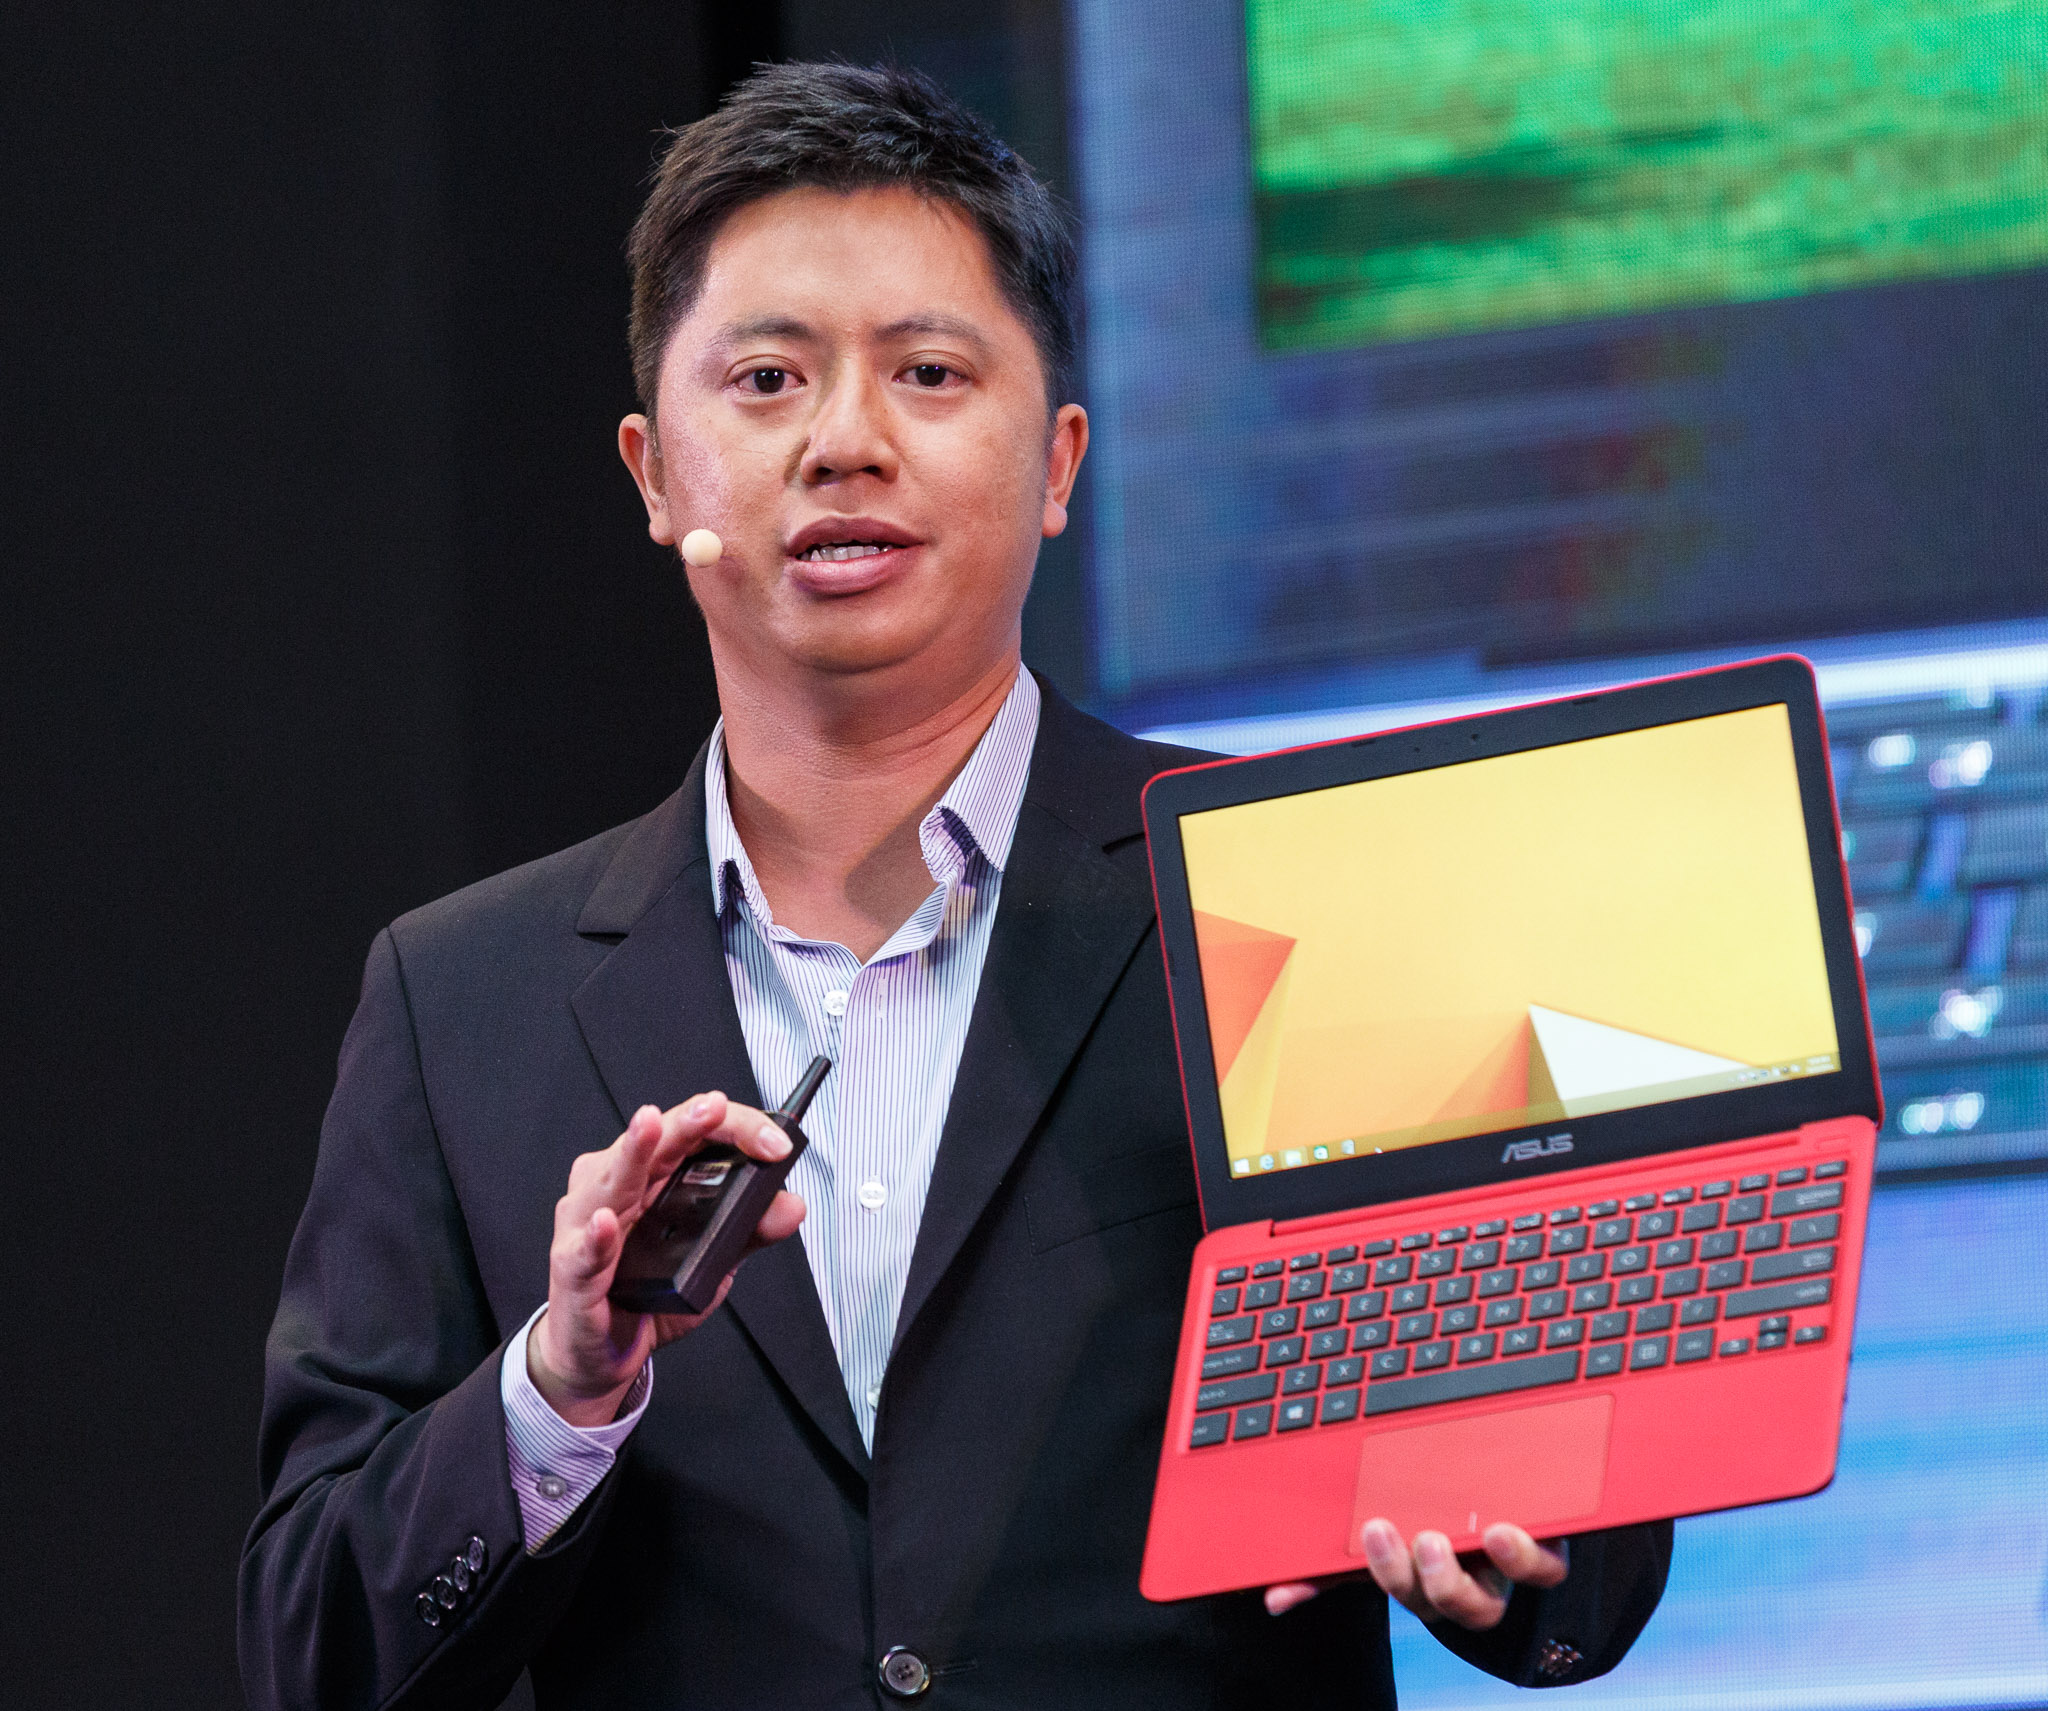 Asus Senior Product Director Derek Yu debuts the EeeBook X205, a new entry into the old Netbook market, at IFA in Berlin.